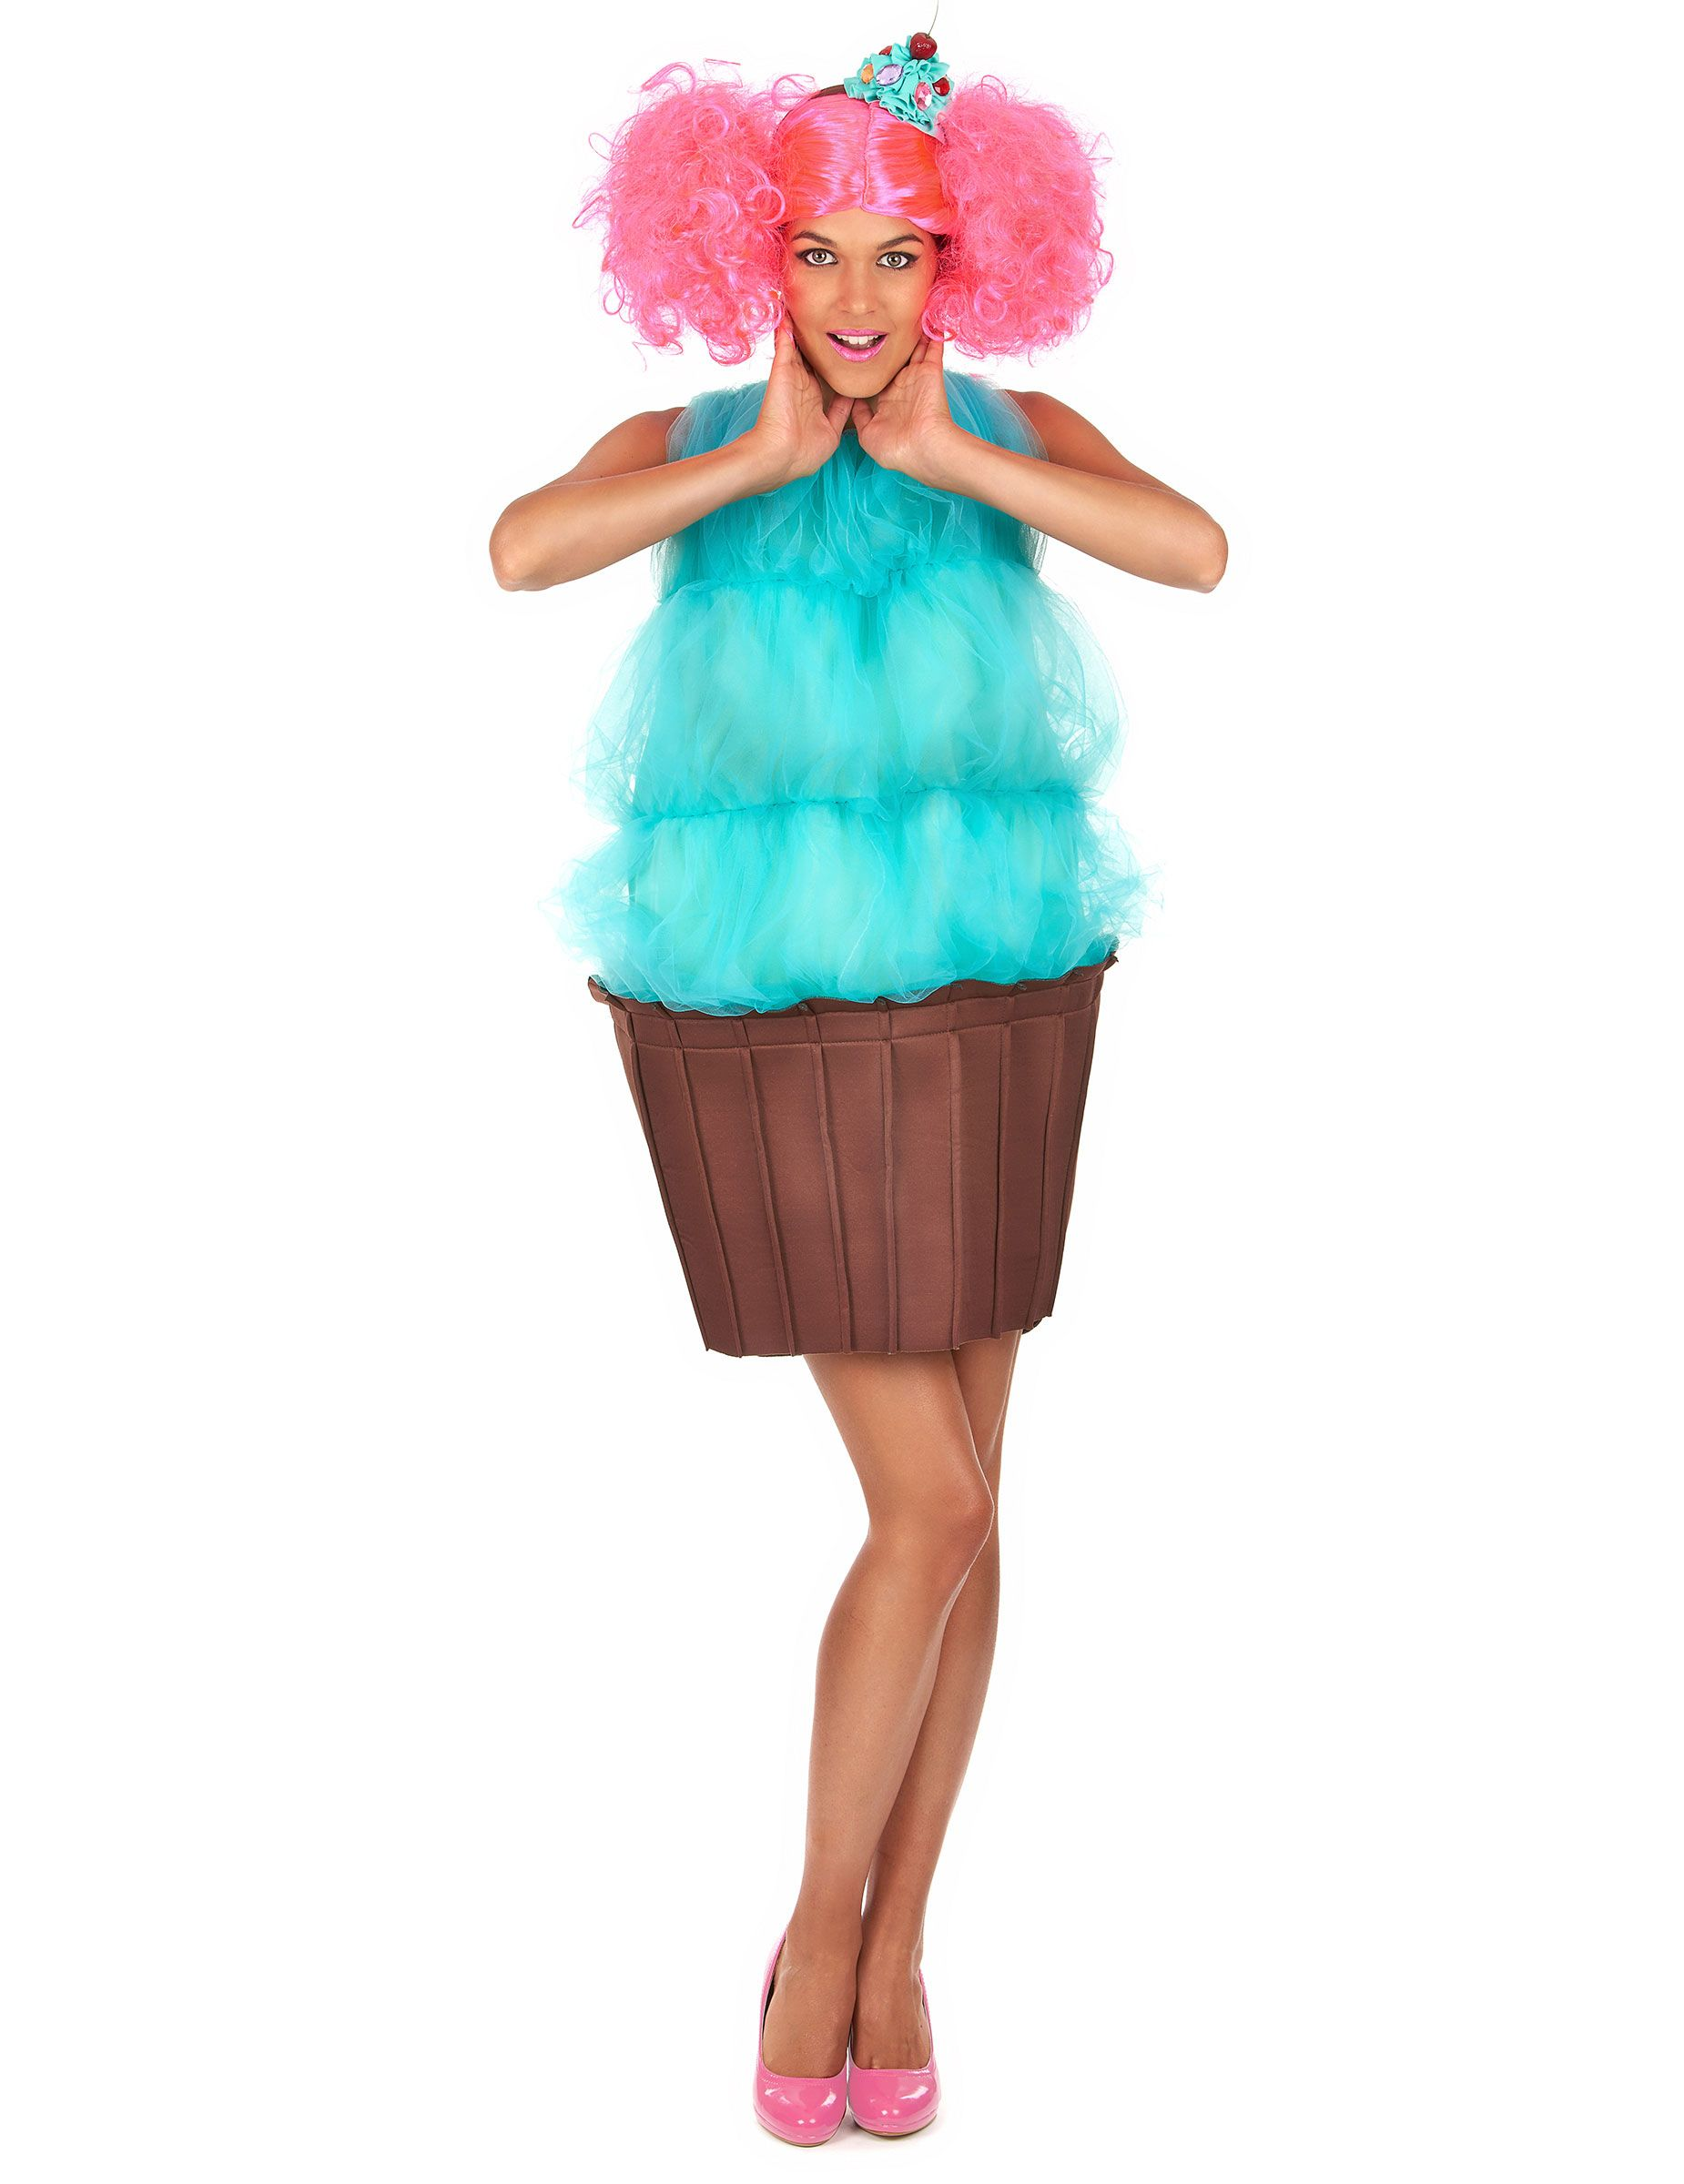 goedkope carnavalsoutfit